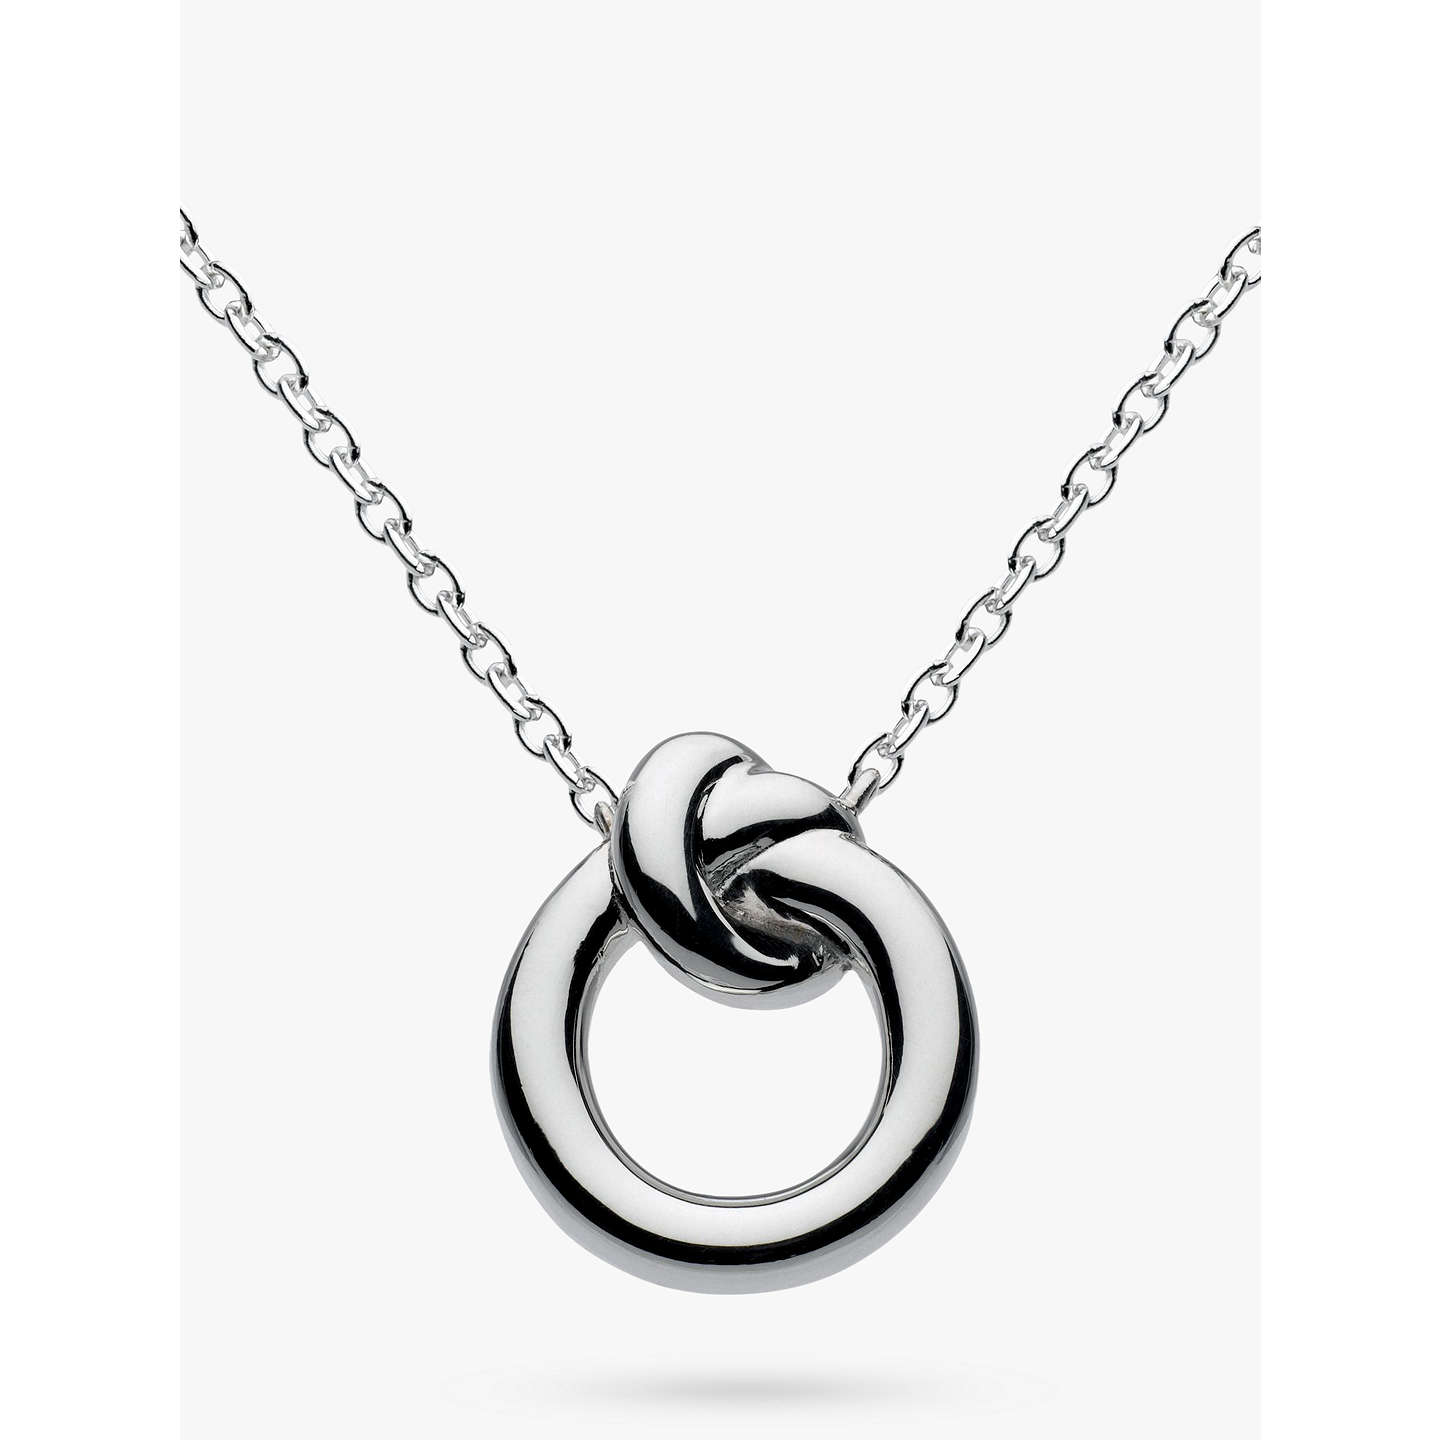 necklace pmr sterling az triquetra celtic jewelry bling pendant trinity knot inch silver